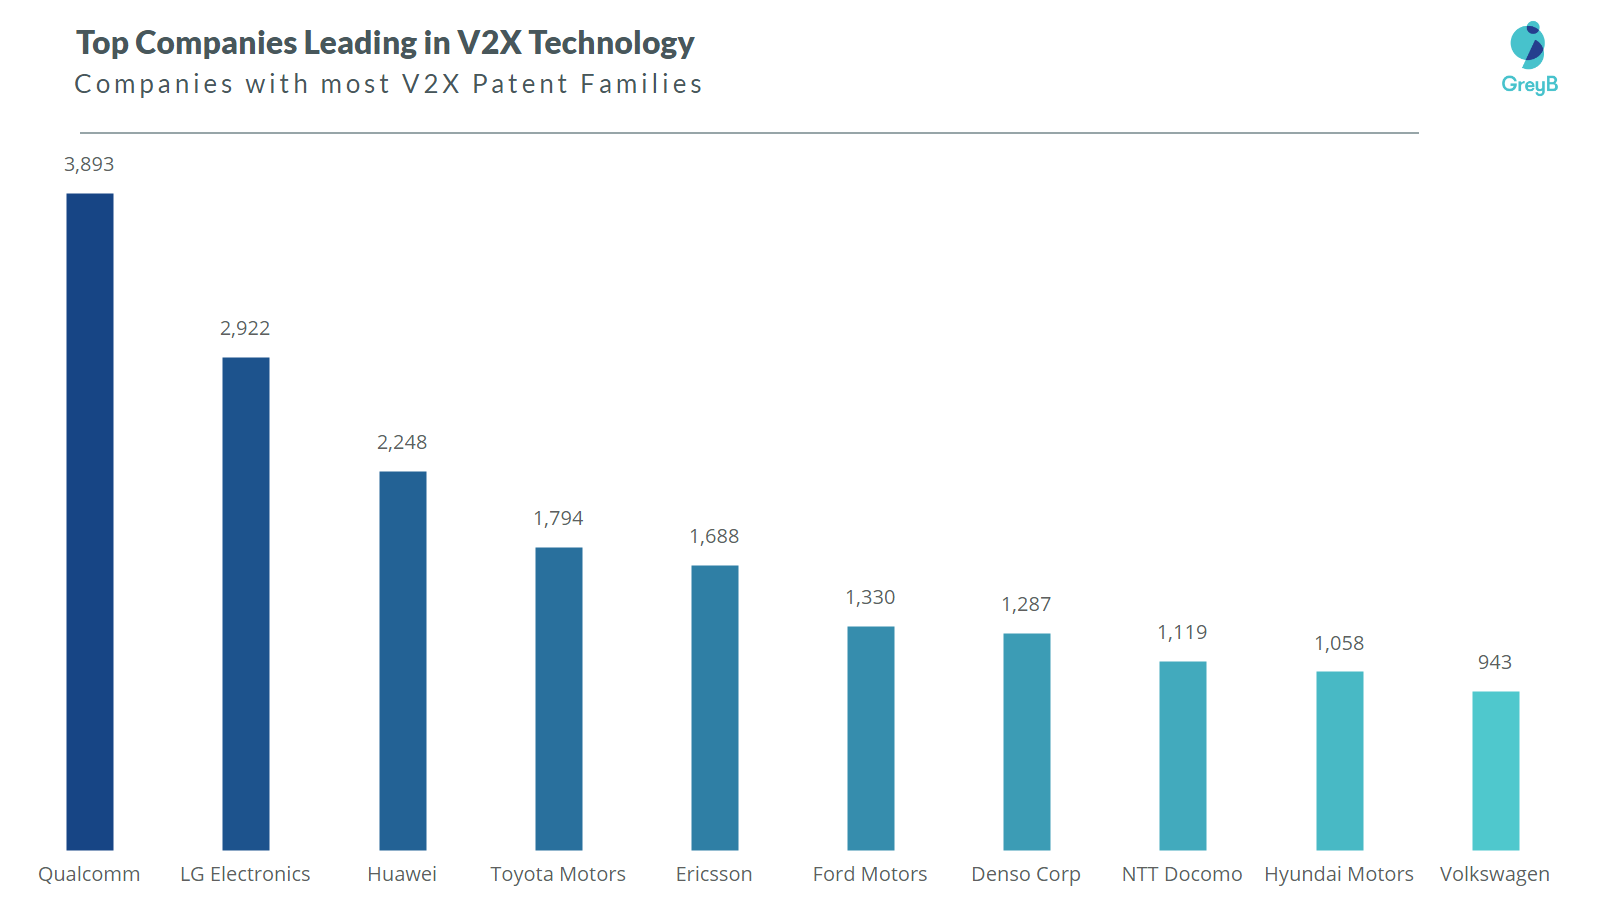 Companies with most V2X patents